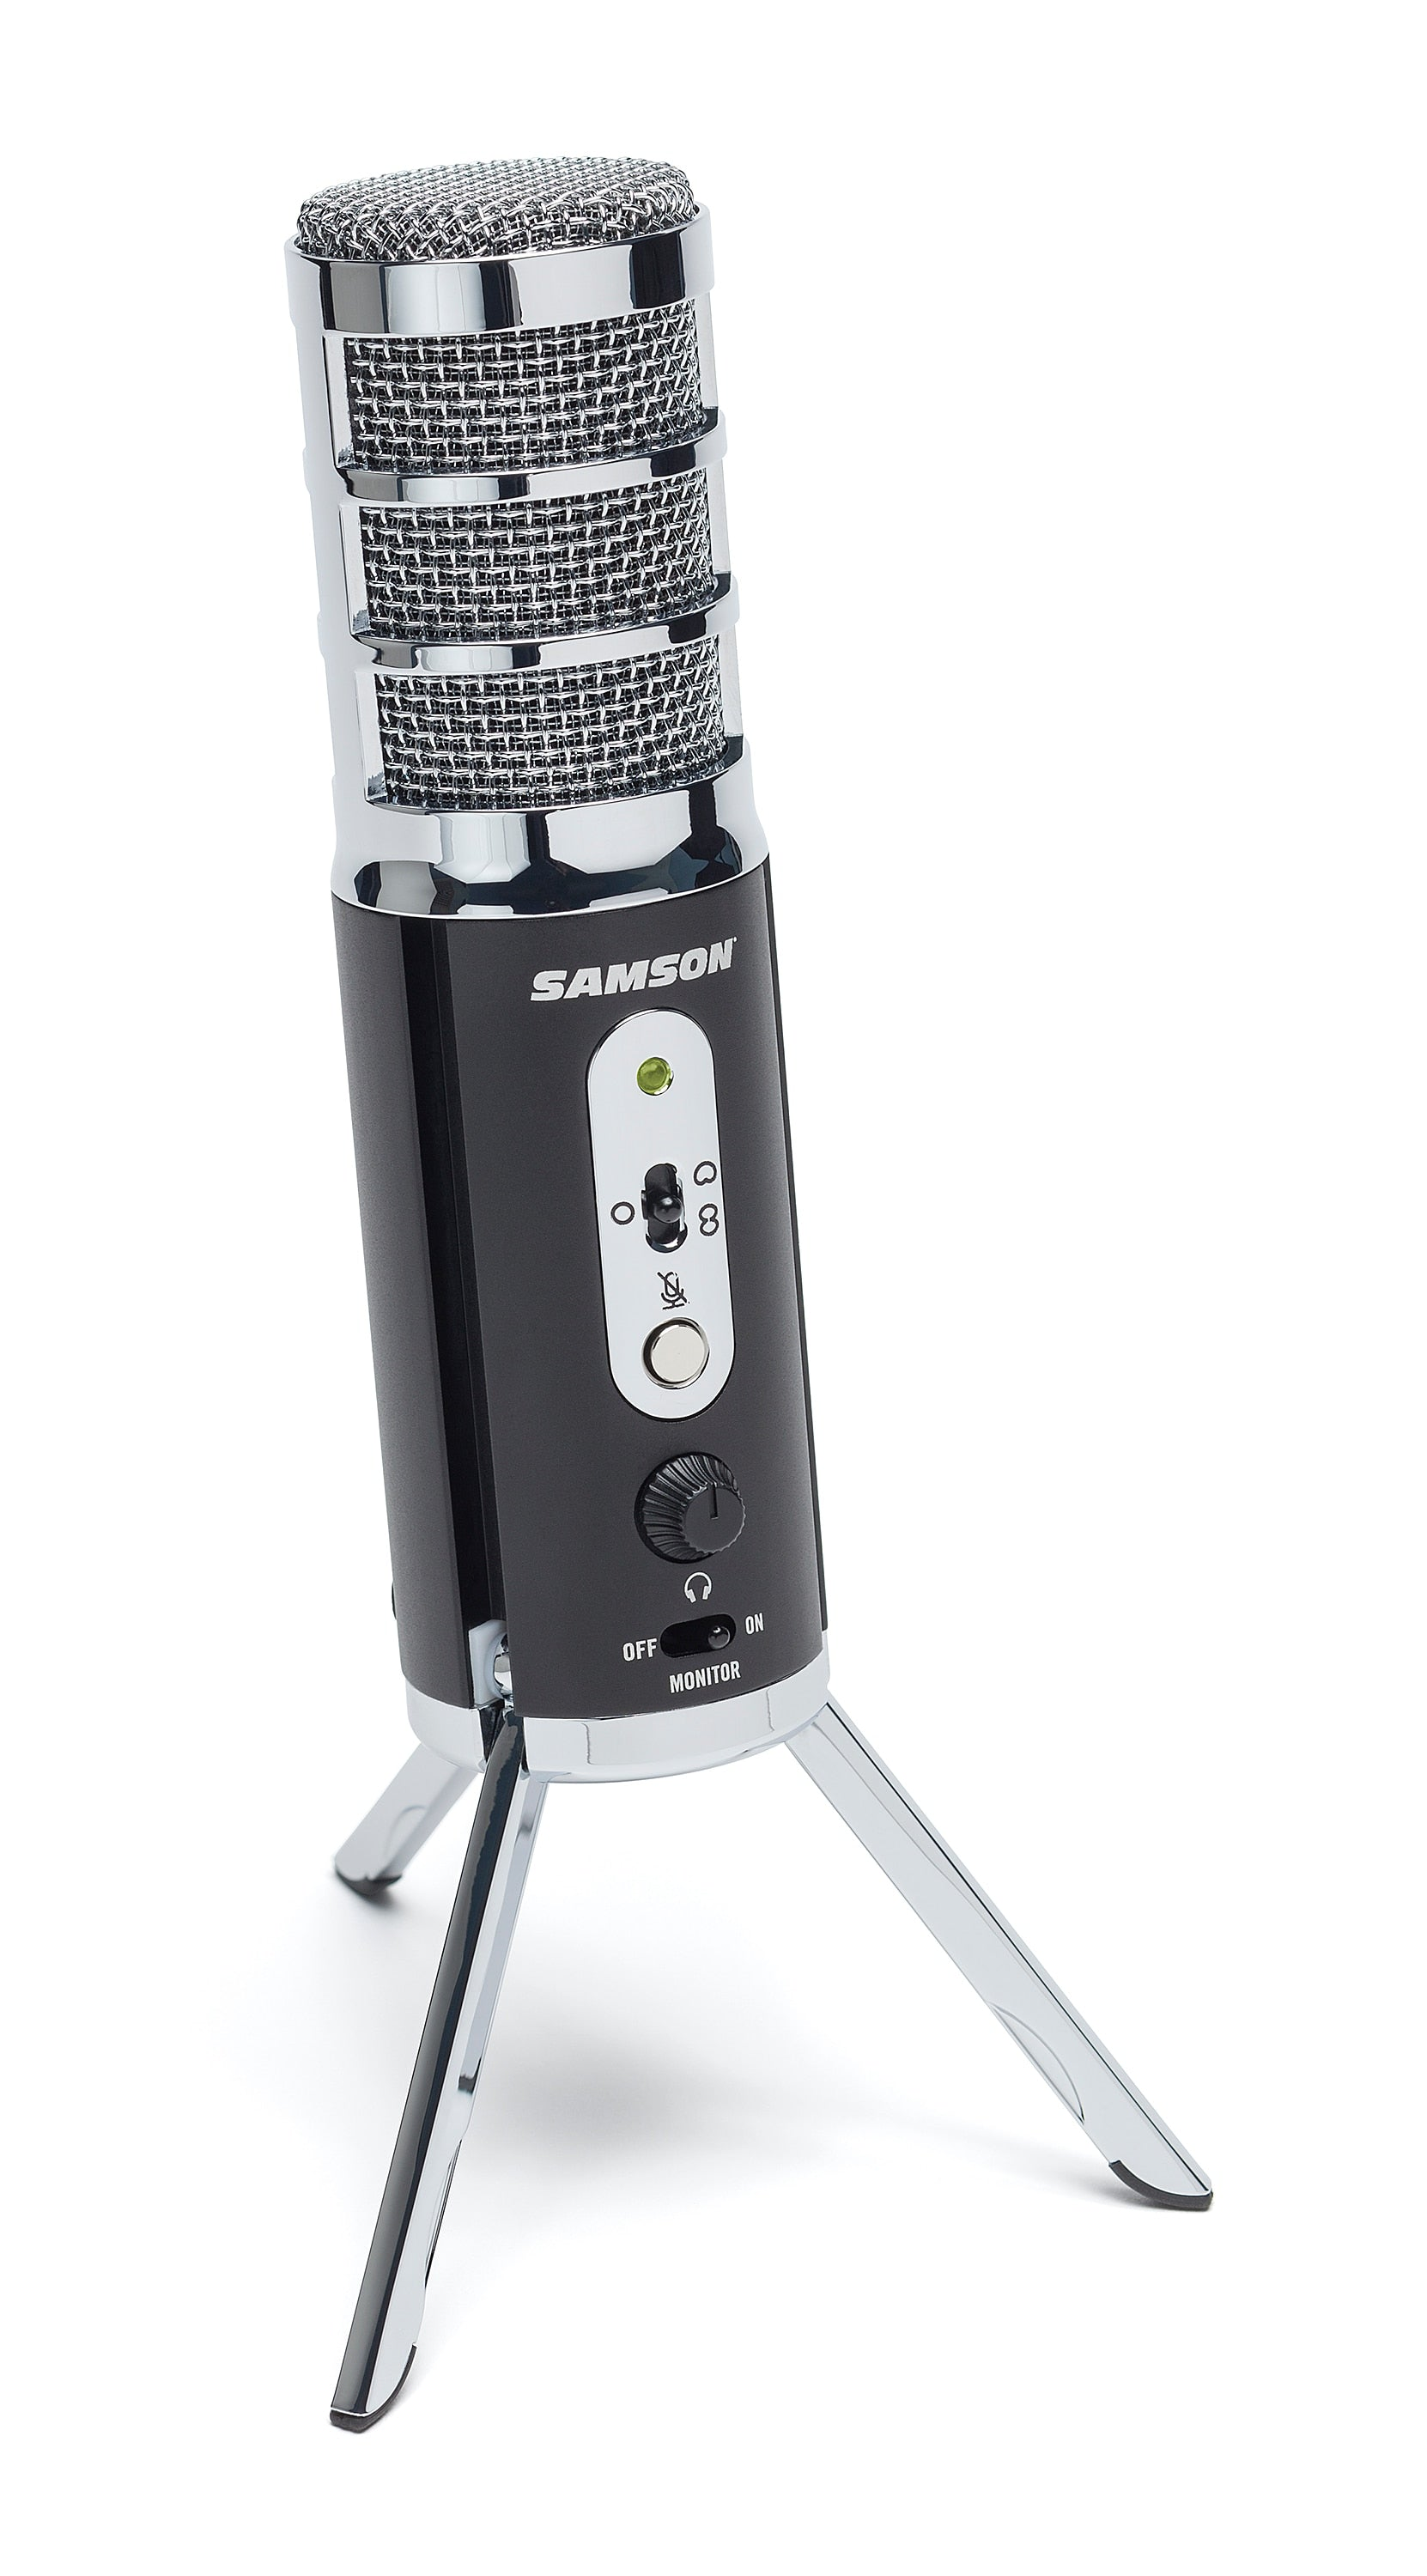 SAMSON Satellite potable USB/iOS broadcast microphone for streaming,podcasting,gaming,VoIP,voiceover work and recording music